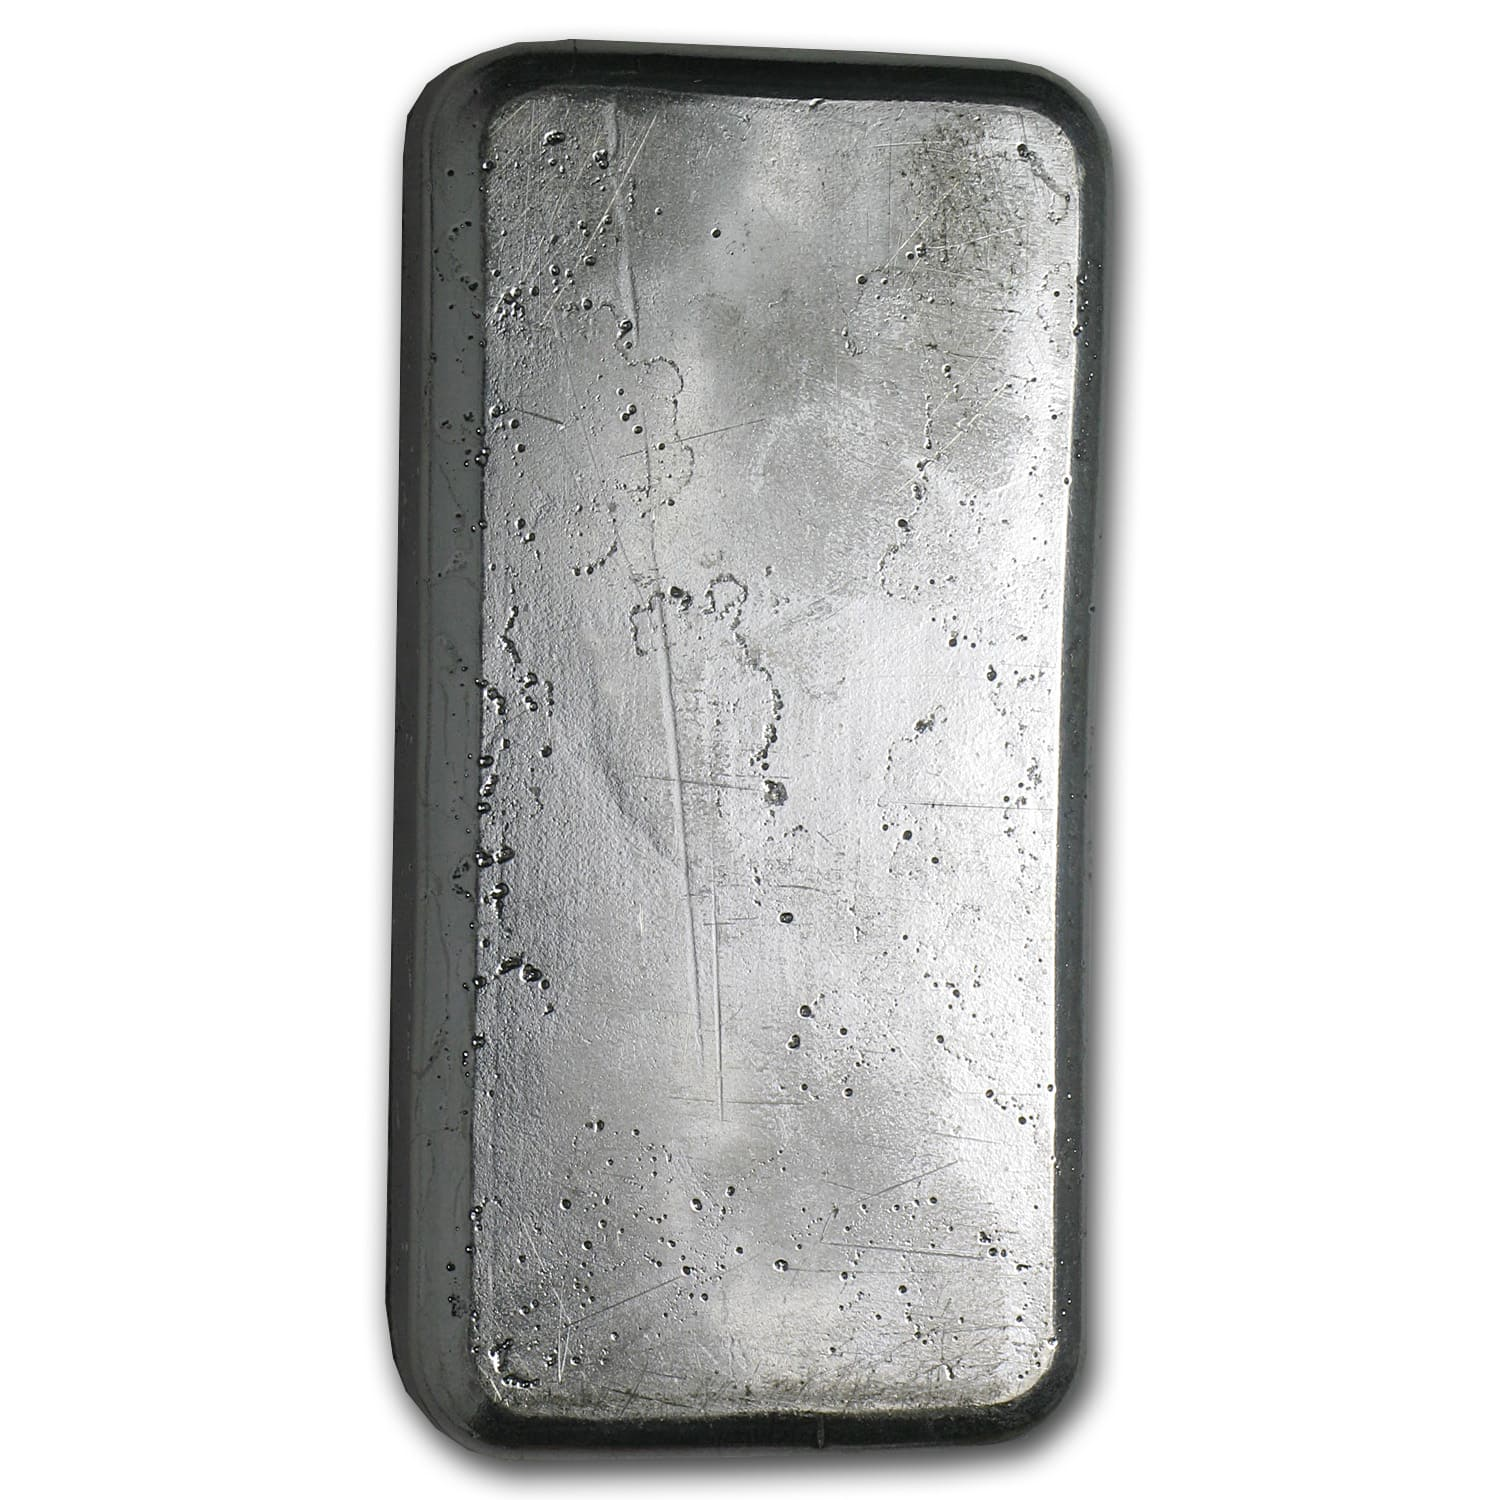 10 oz Silver Bar - Perth Mint (8/14)